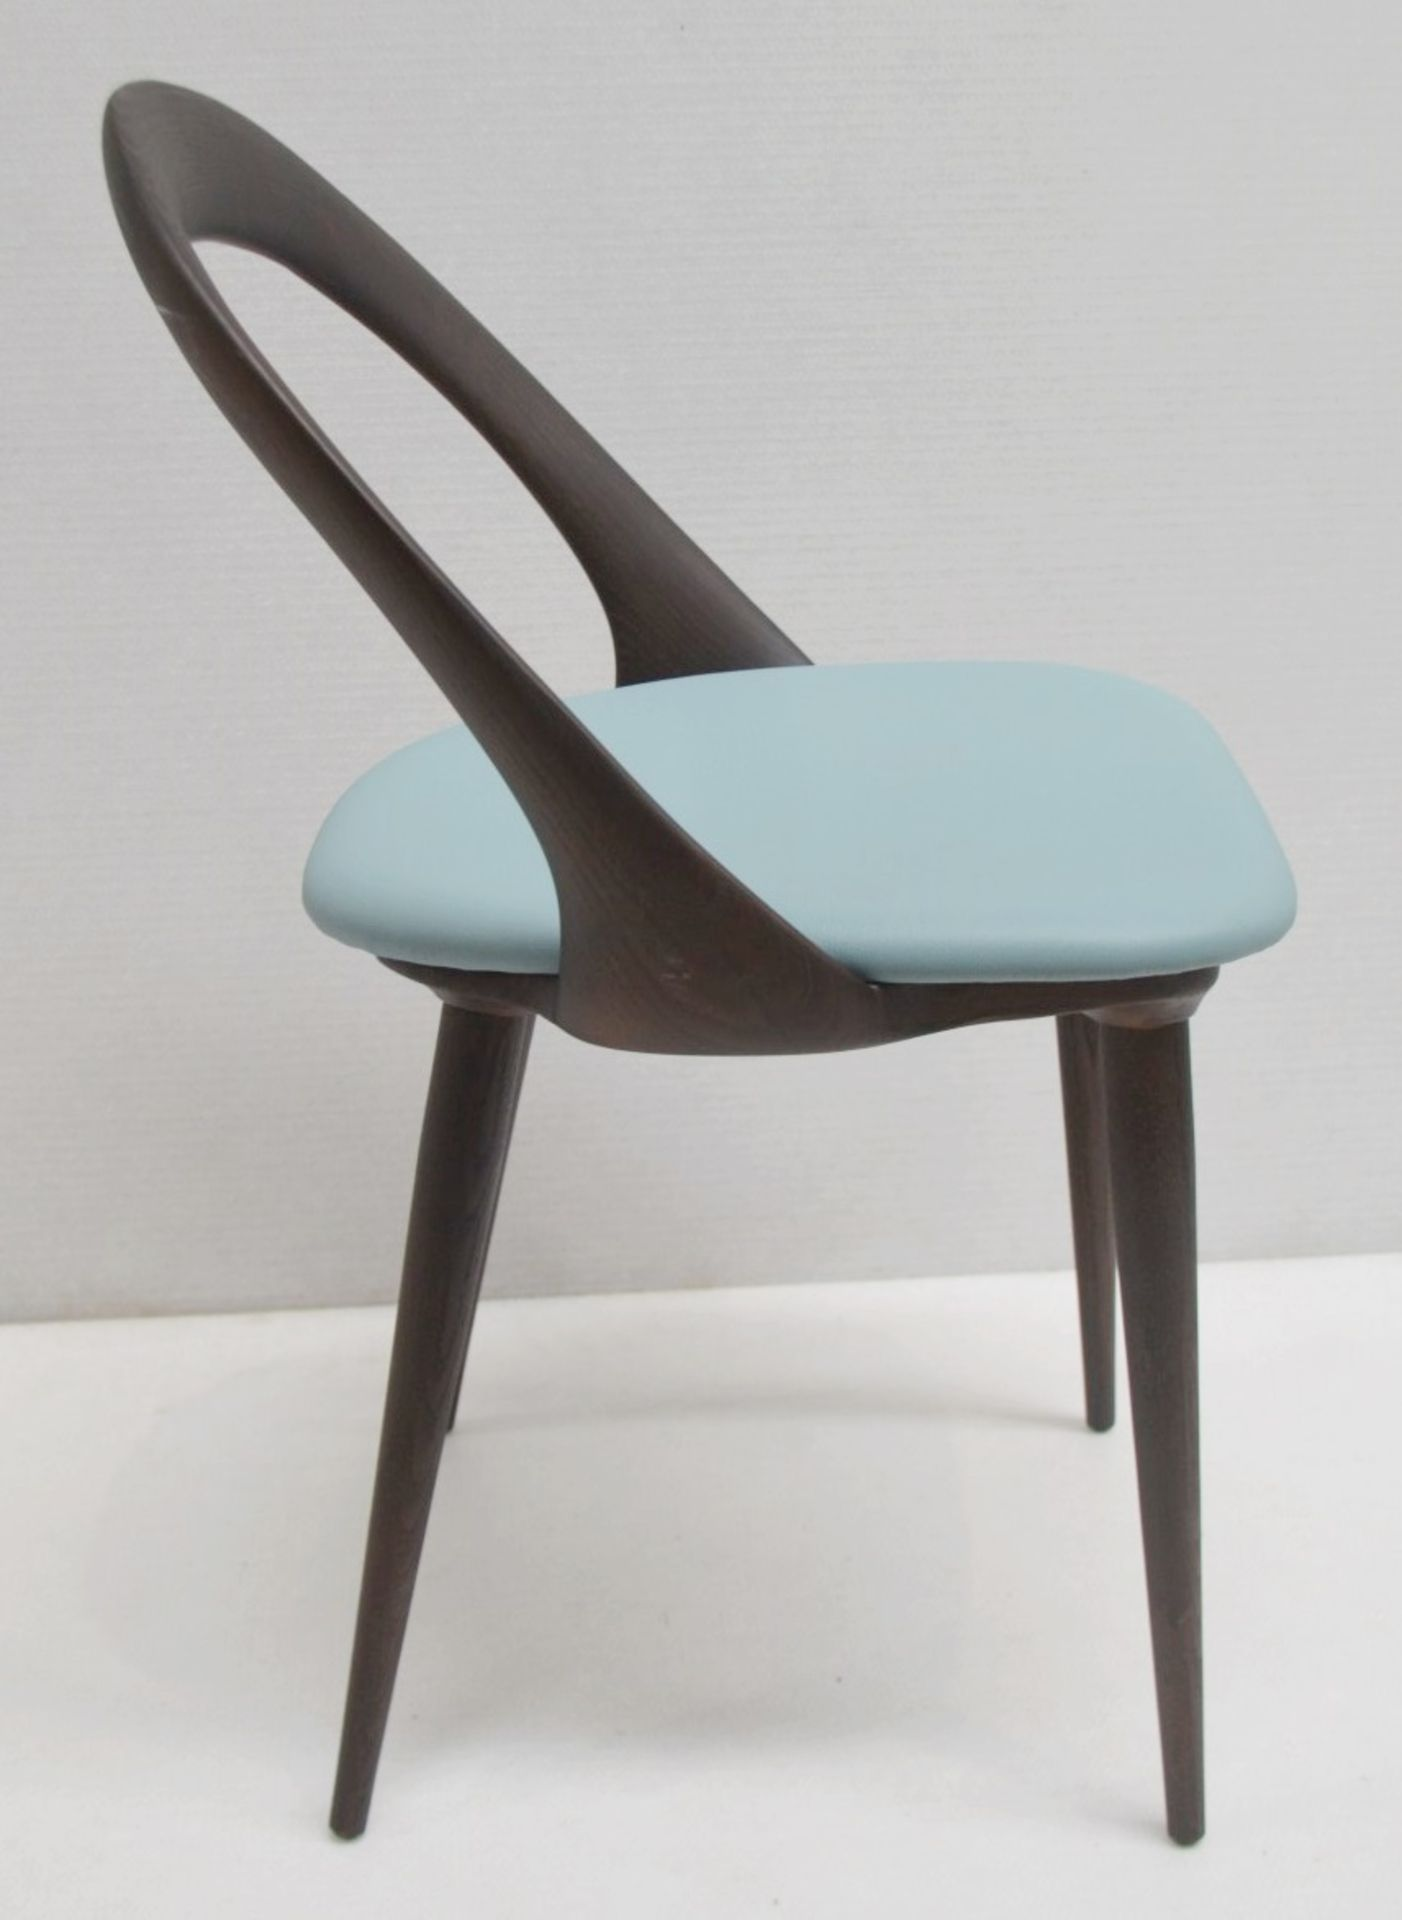 Set Of 4 x PORADA 'Ester' Italian Designer Dining Chairs Featuring Leather Seats - RRP £5,120 - Image 11 of 11